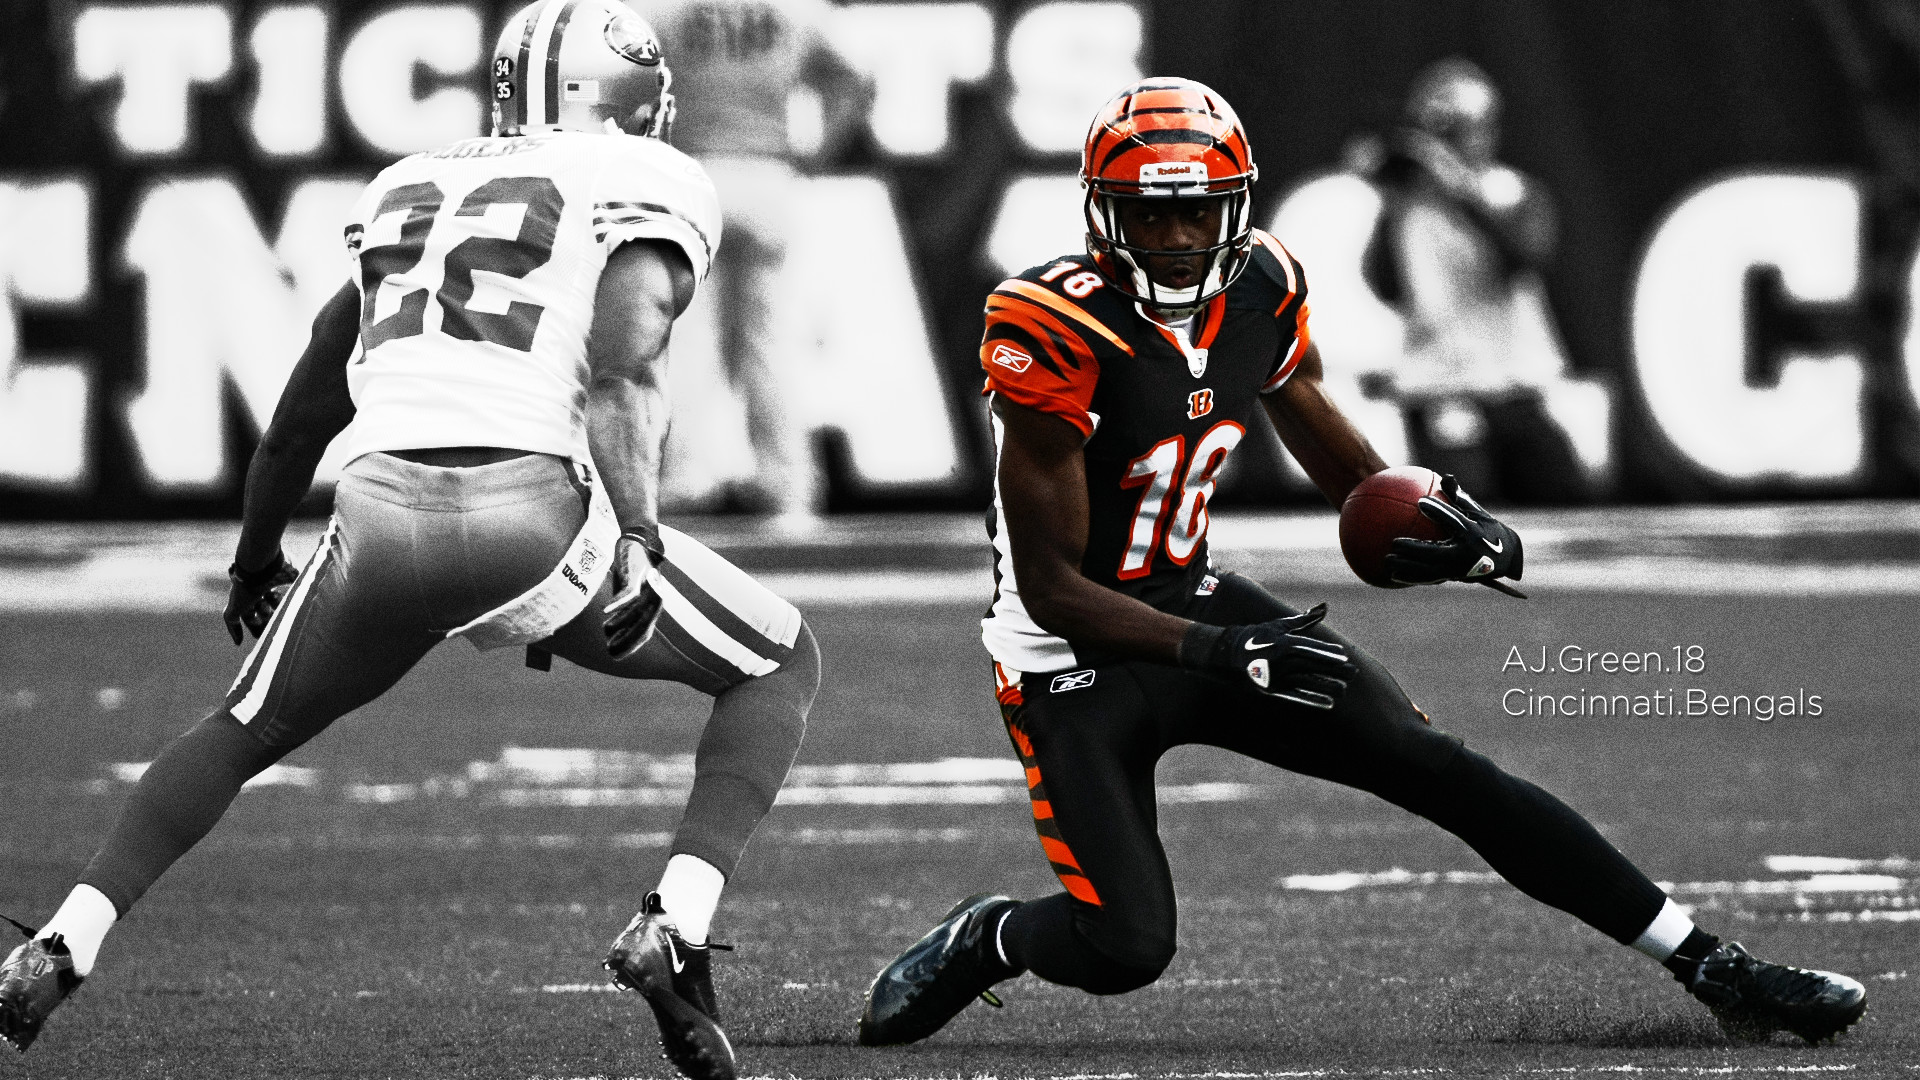 1920x1080 Black Windows Theme With Cincinnati Bengals Wallpapers Bengals Desktop  Wallpapers Wallpapers)